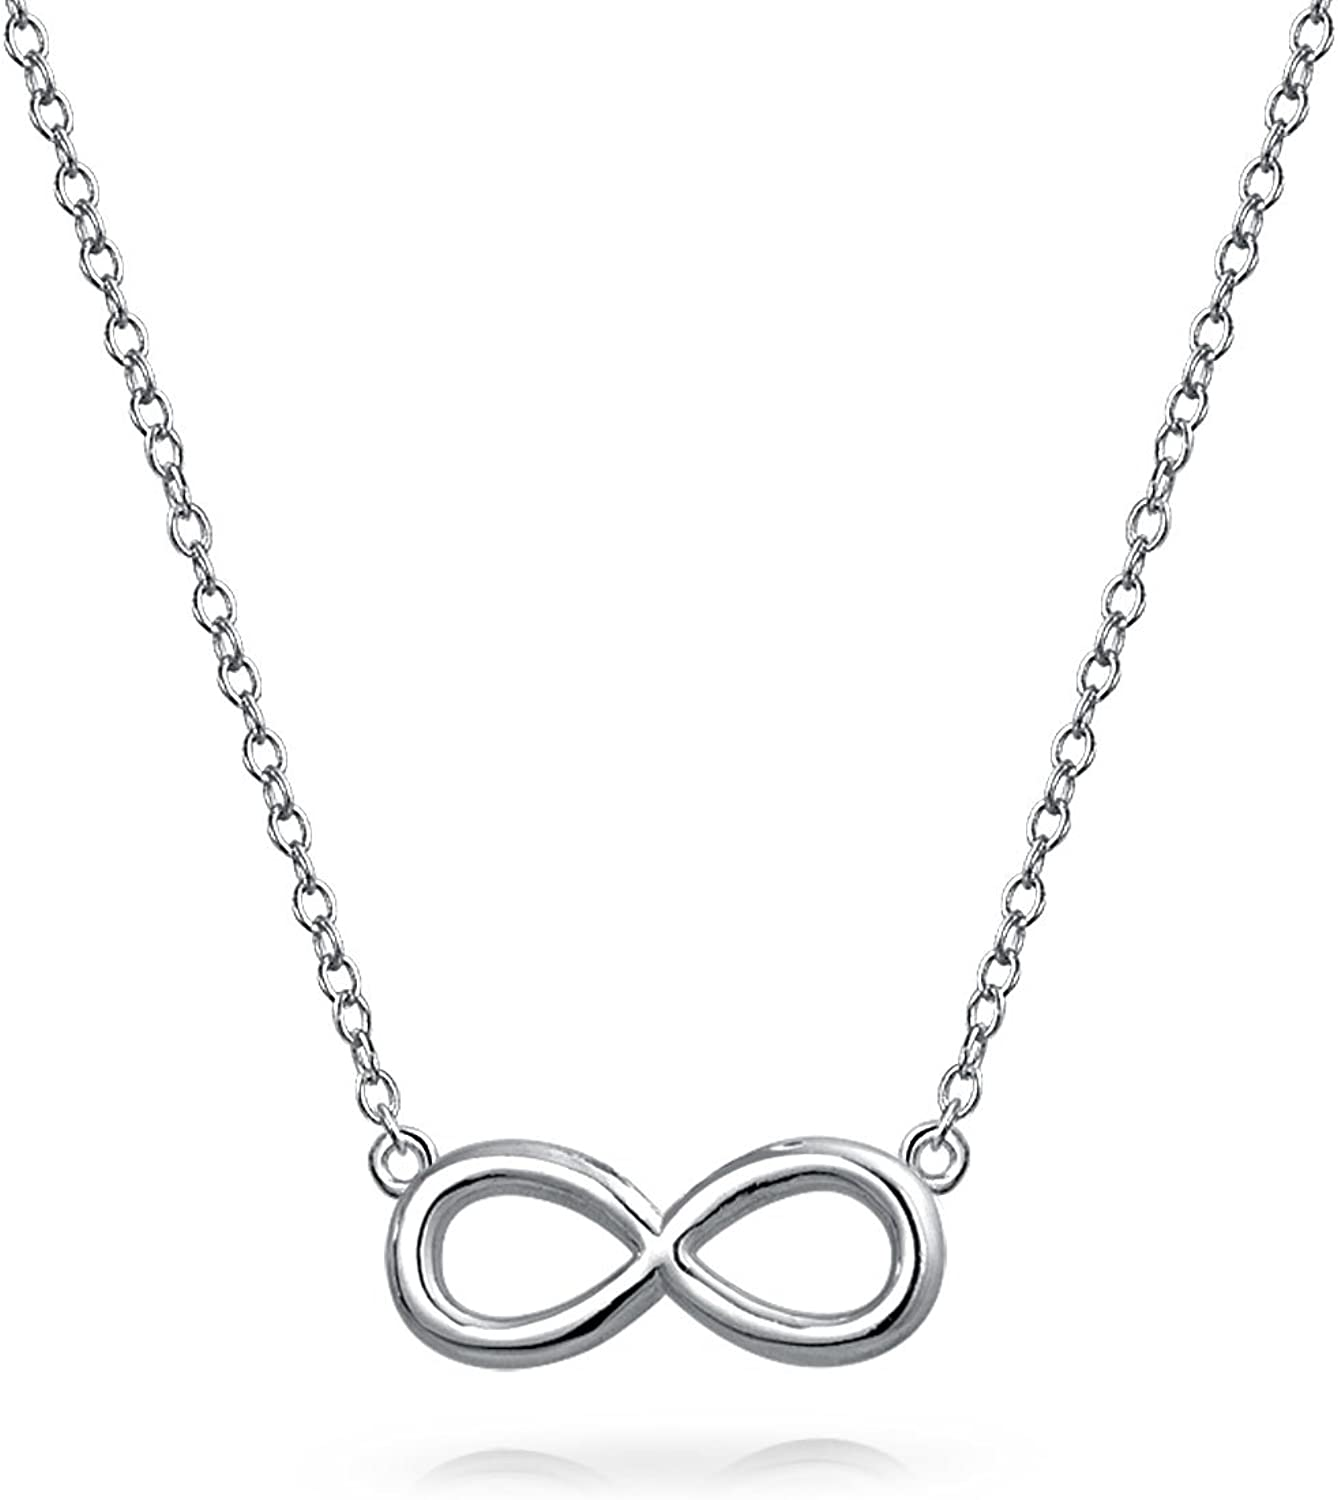 Figure 8 Necklace Pendant .925 Sterling Silver Women/'s Jewelry Infinity Charm